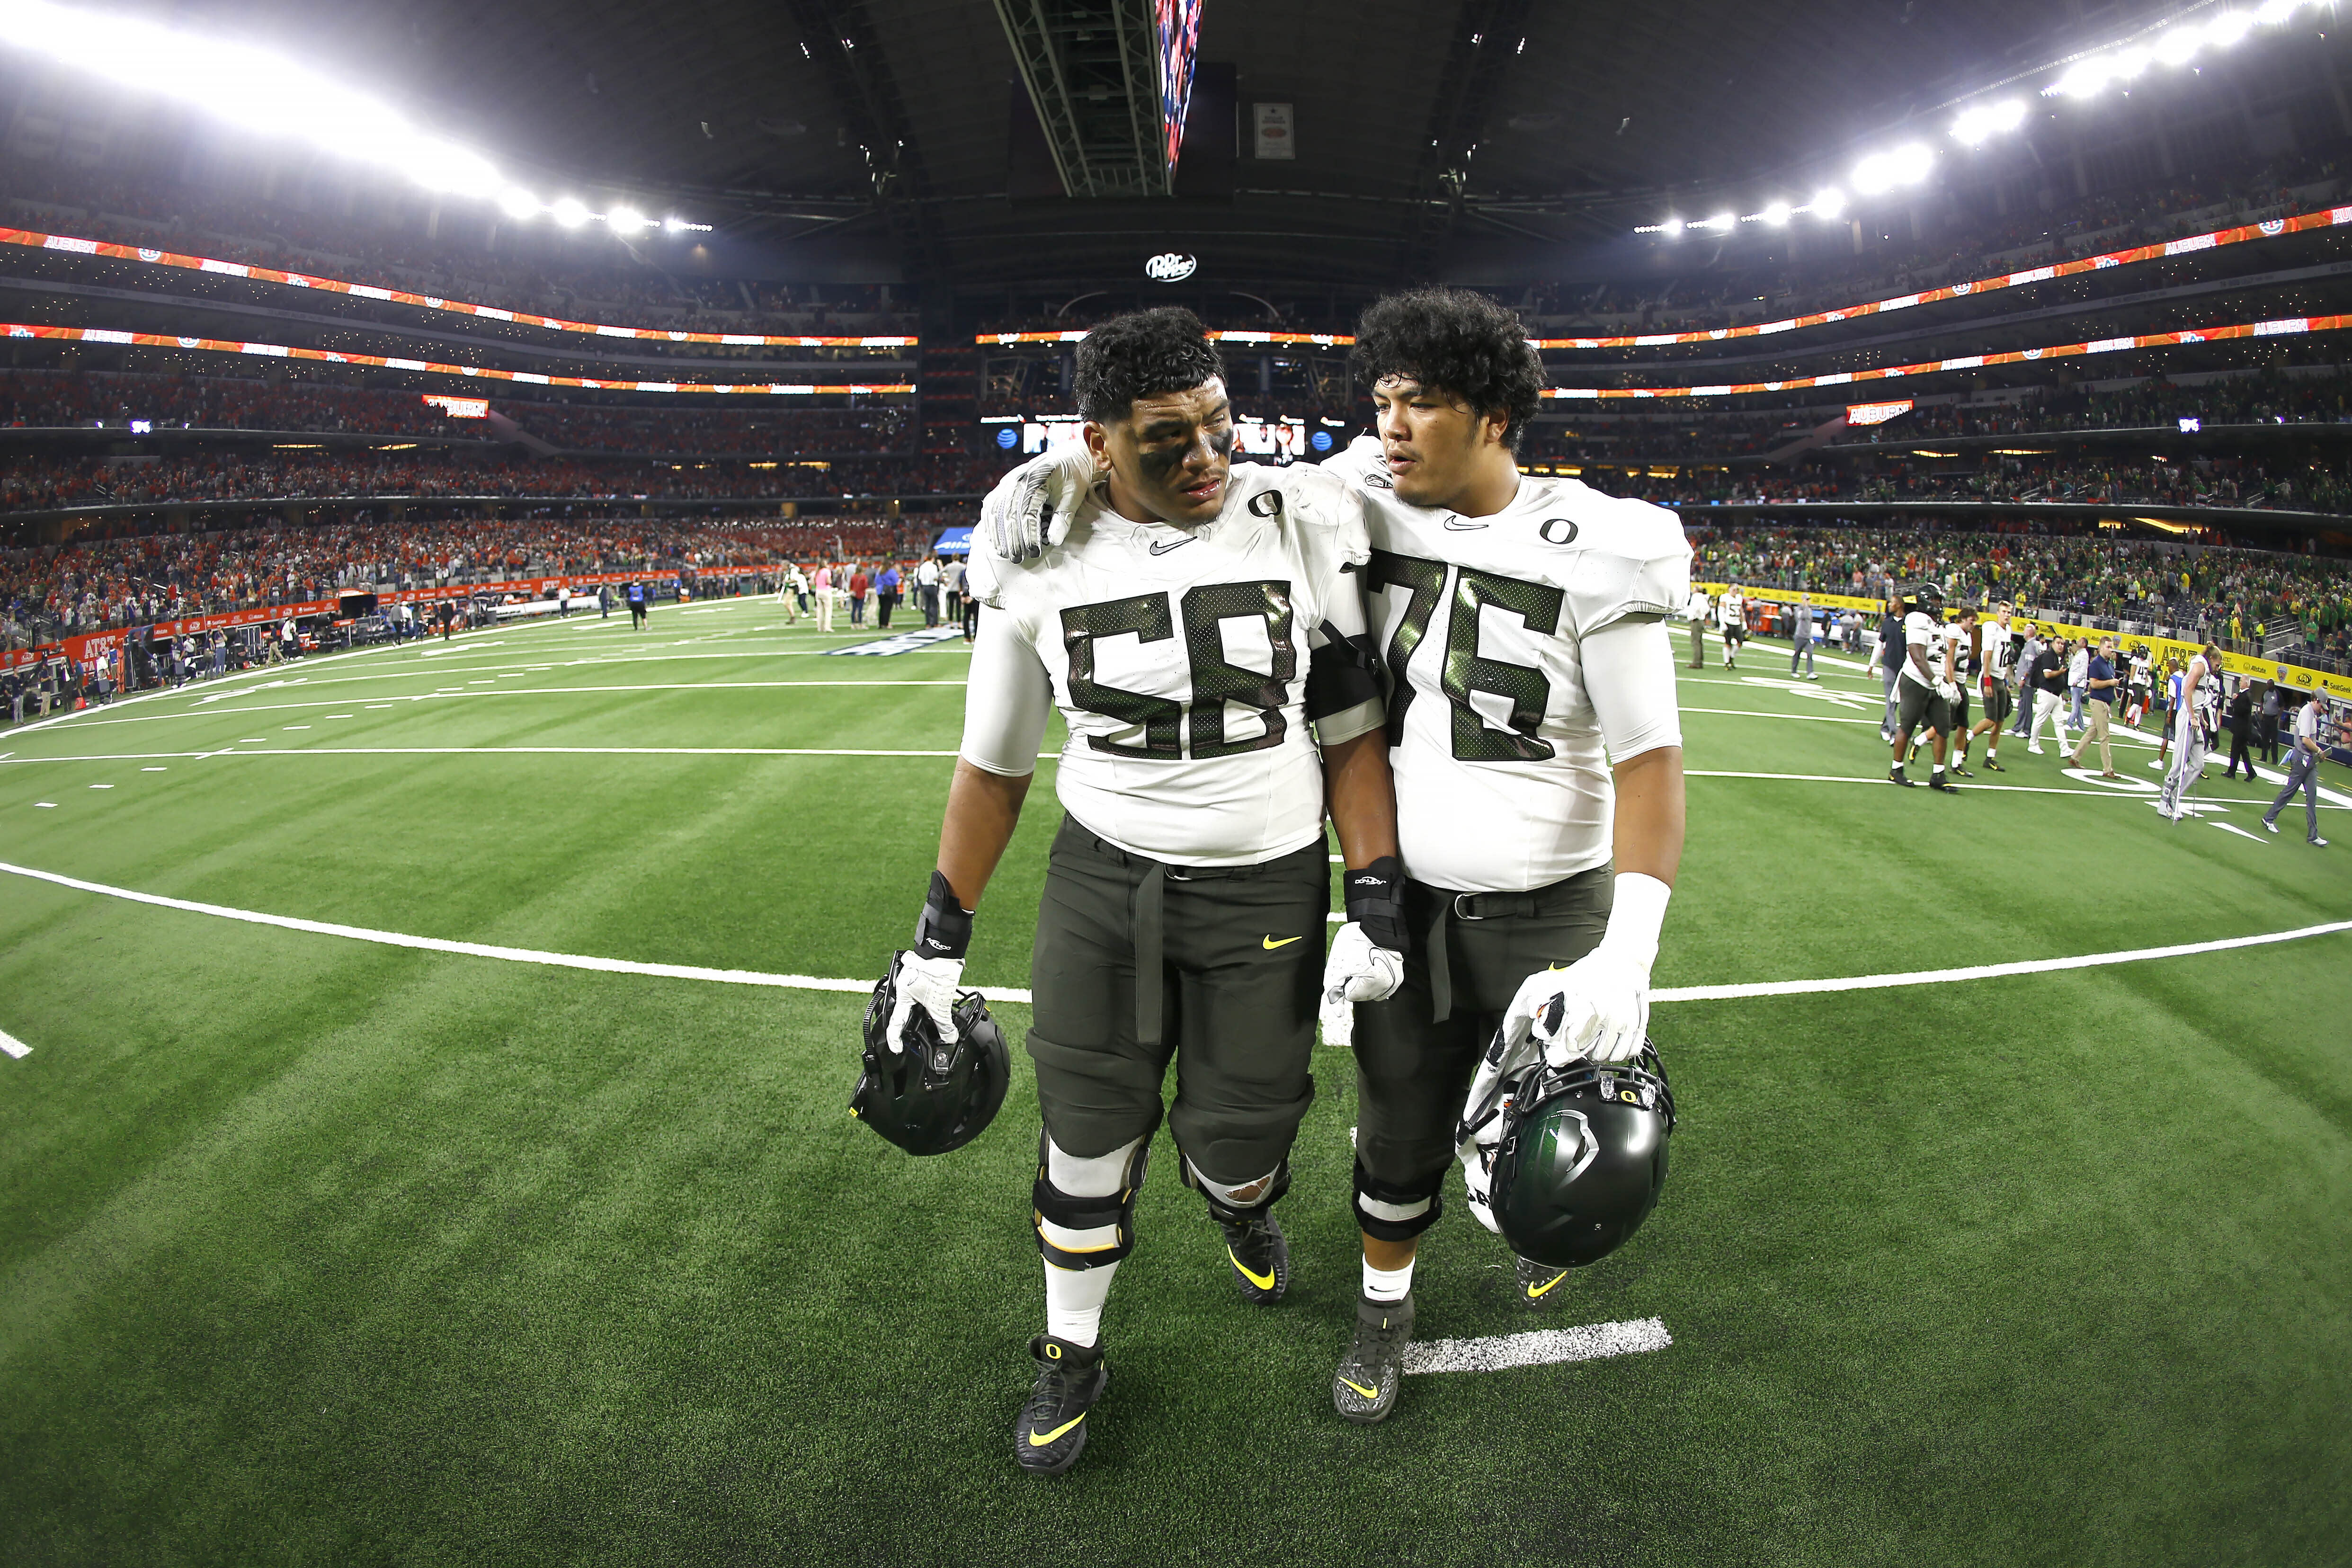 Oregon offensive linemen Penei Sewell (58) and Jonah Tauanu'u (76) walk off the field after the team's 27-21 loss to Auburn following an NCAA college football game, Saturday, Aug. 31, 2019, in Arlington, Texas. (AP Photo/Ron Jenkins)